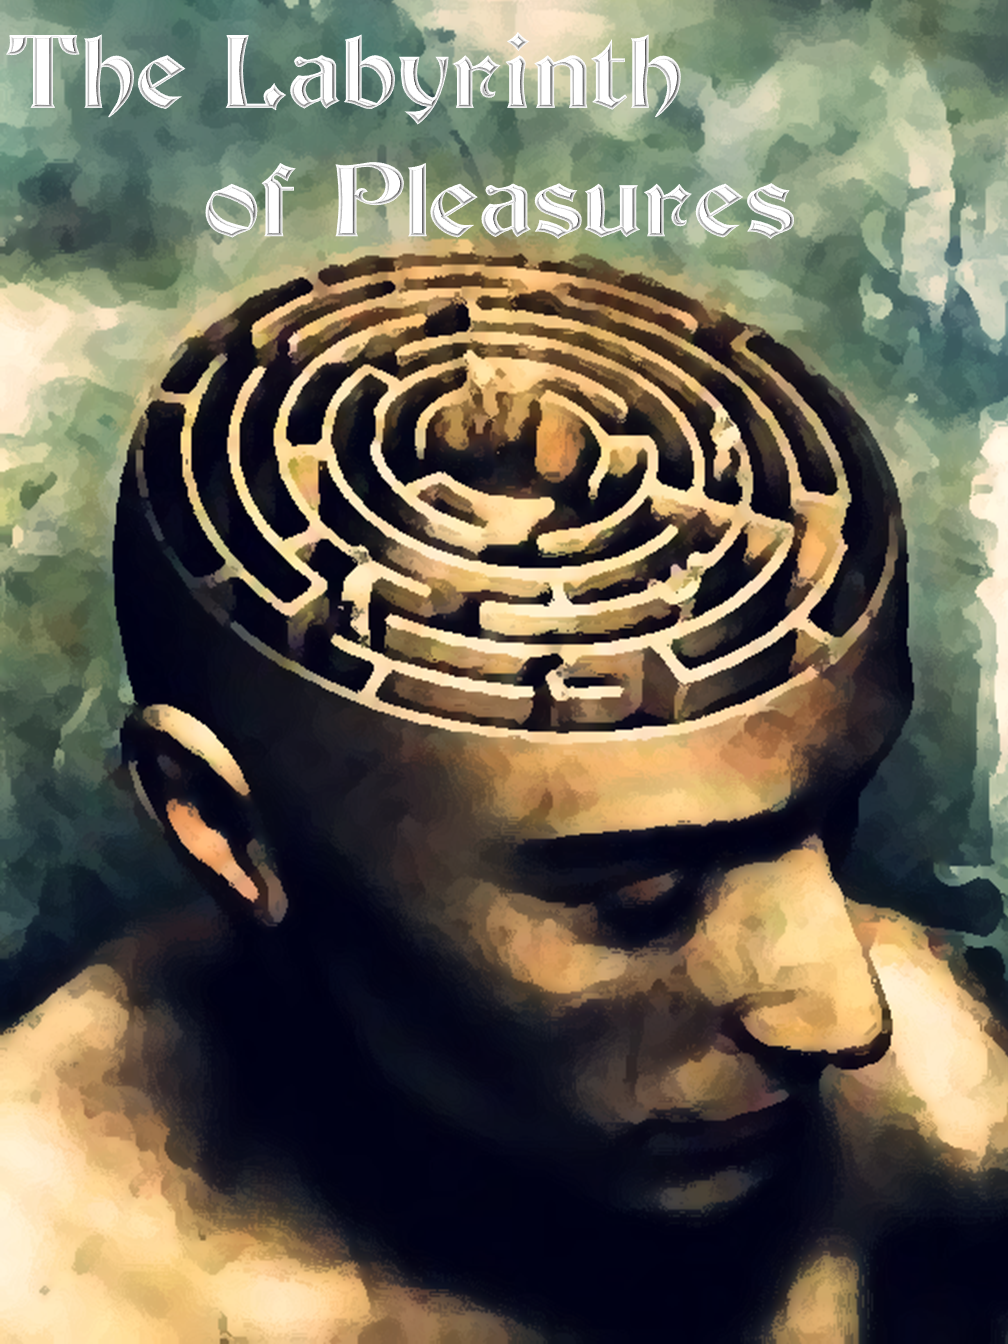 The Labyrinth of Pleasures